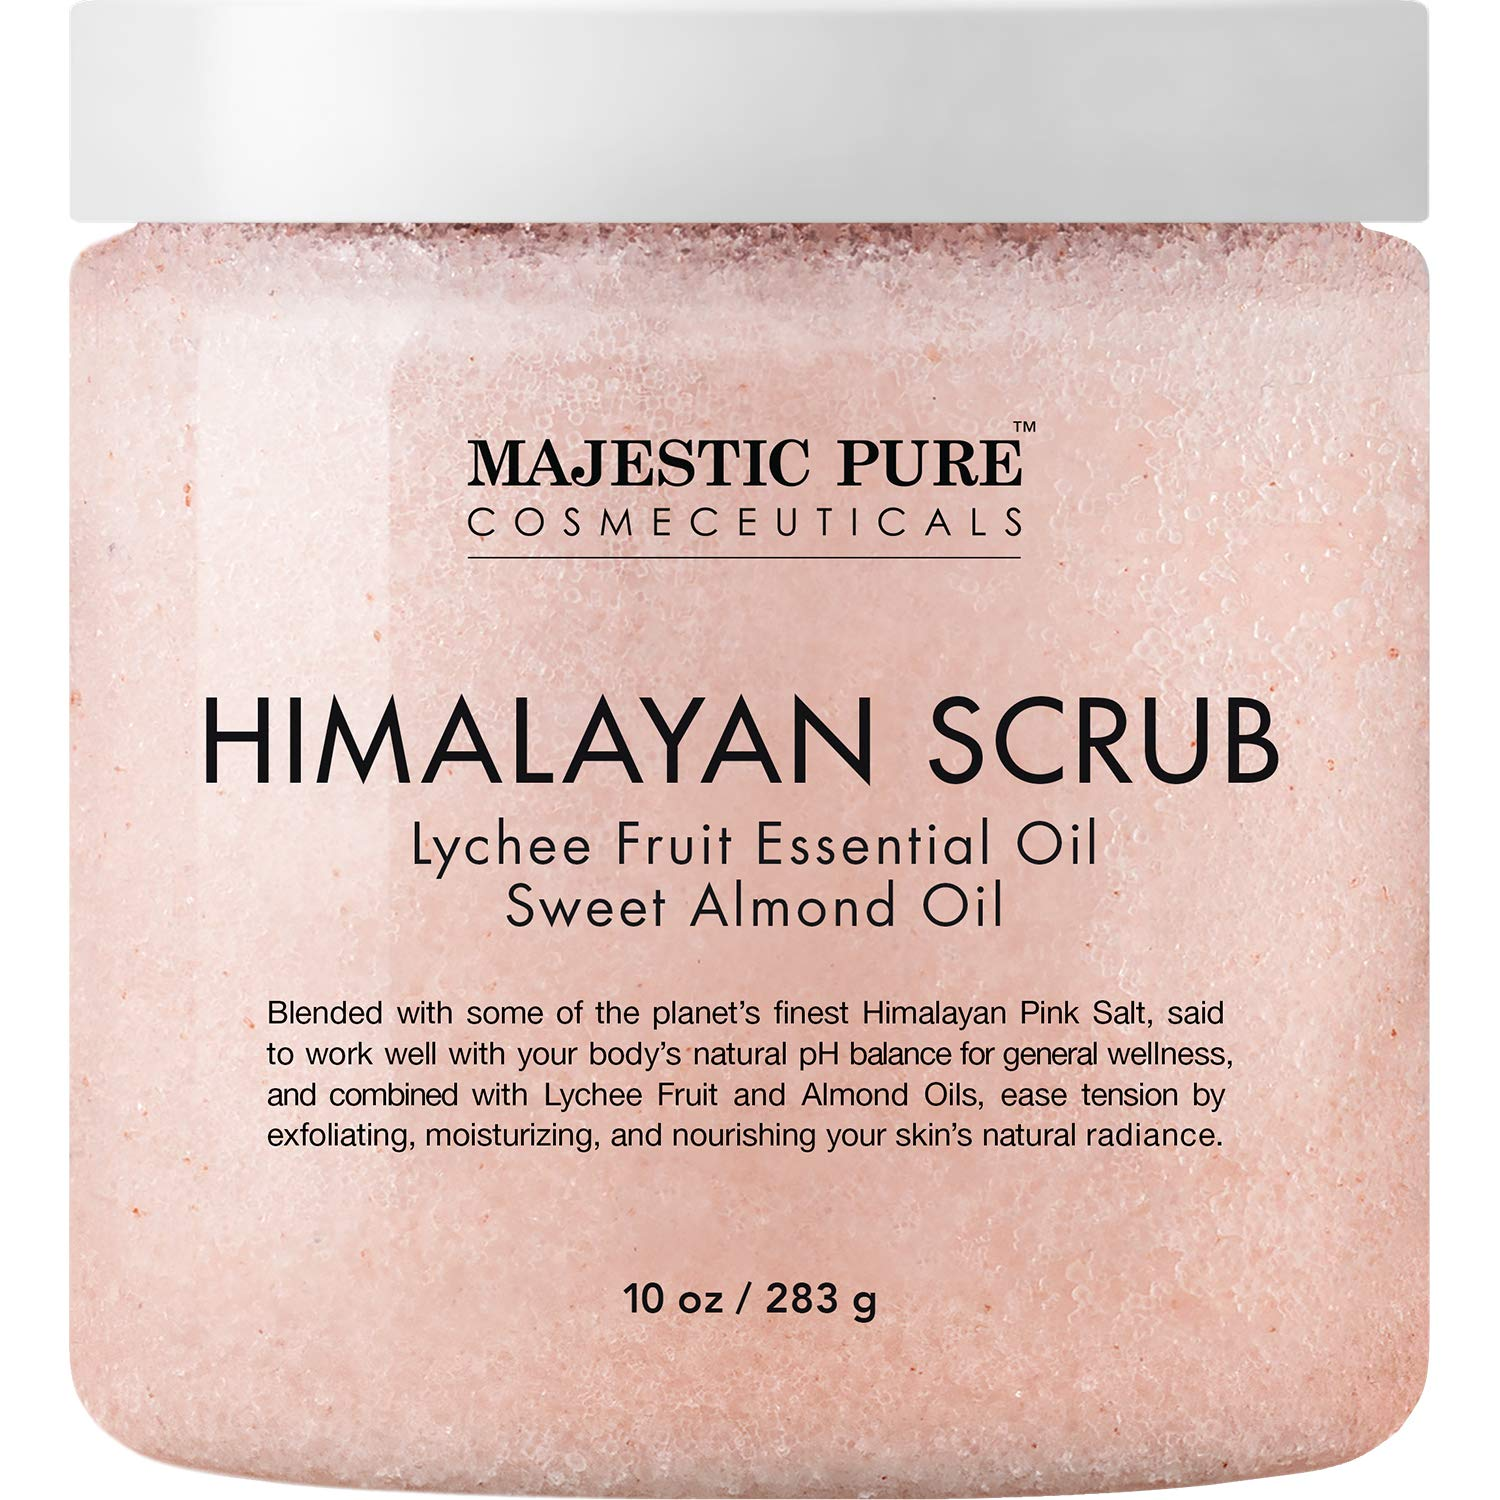 Majestic Pure Himalayan Salt Body Scrub with Lychee Essential Oil, All Natural Scrub to Exfoliate & Moisturize Skin, 10 Ounce (Pack of 1) by Majestic Pure